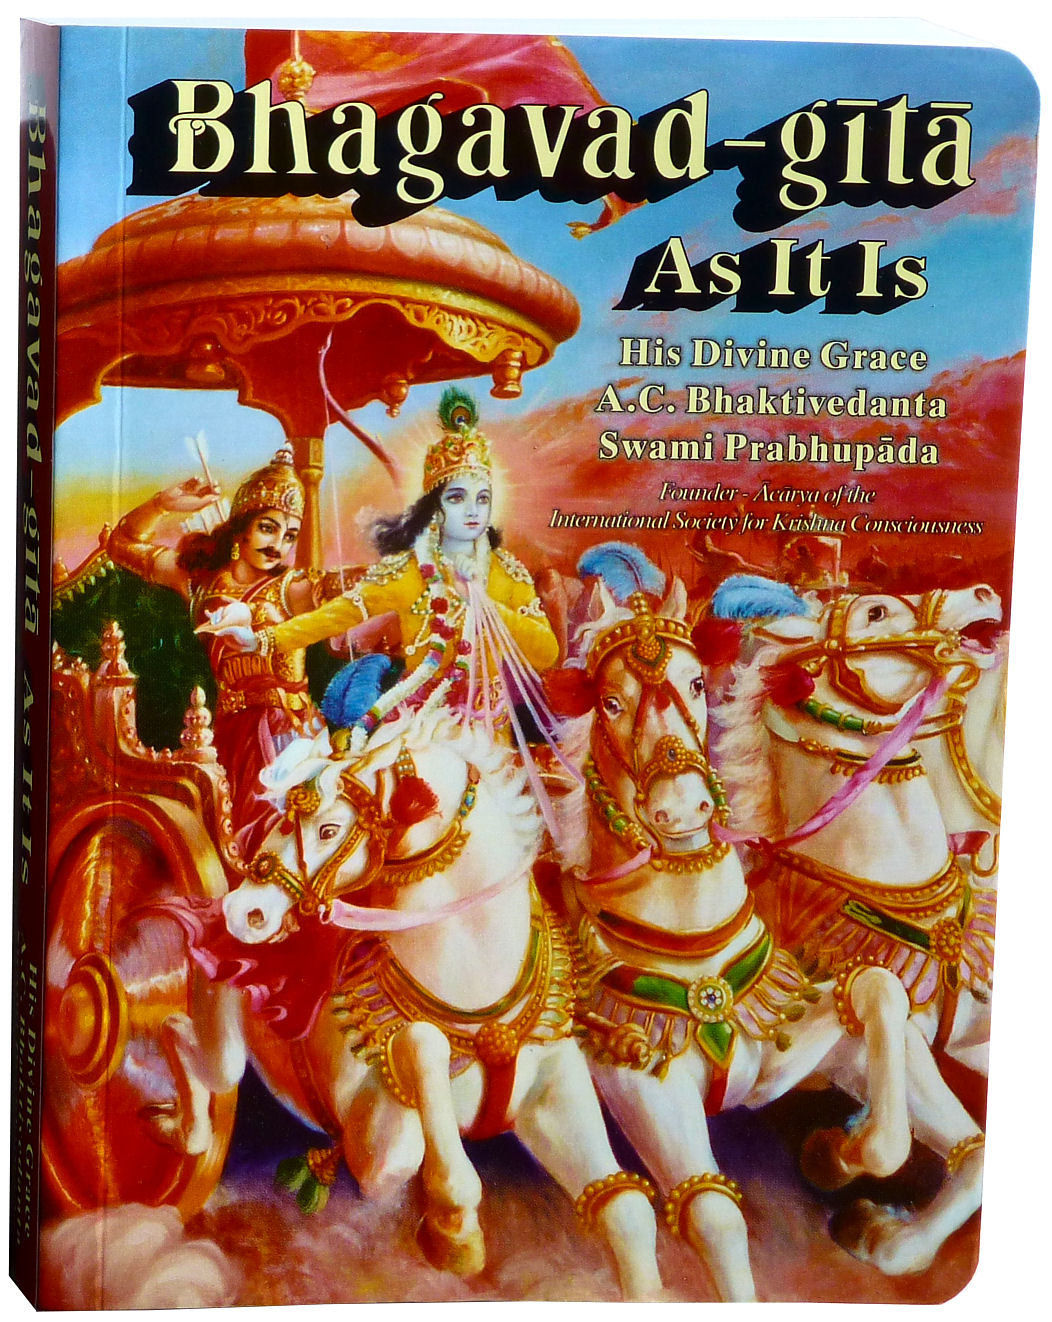 Srila Prabhupadas originale Bücher in deutscher Sprache